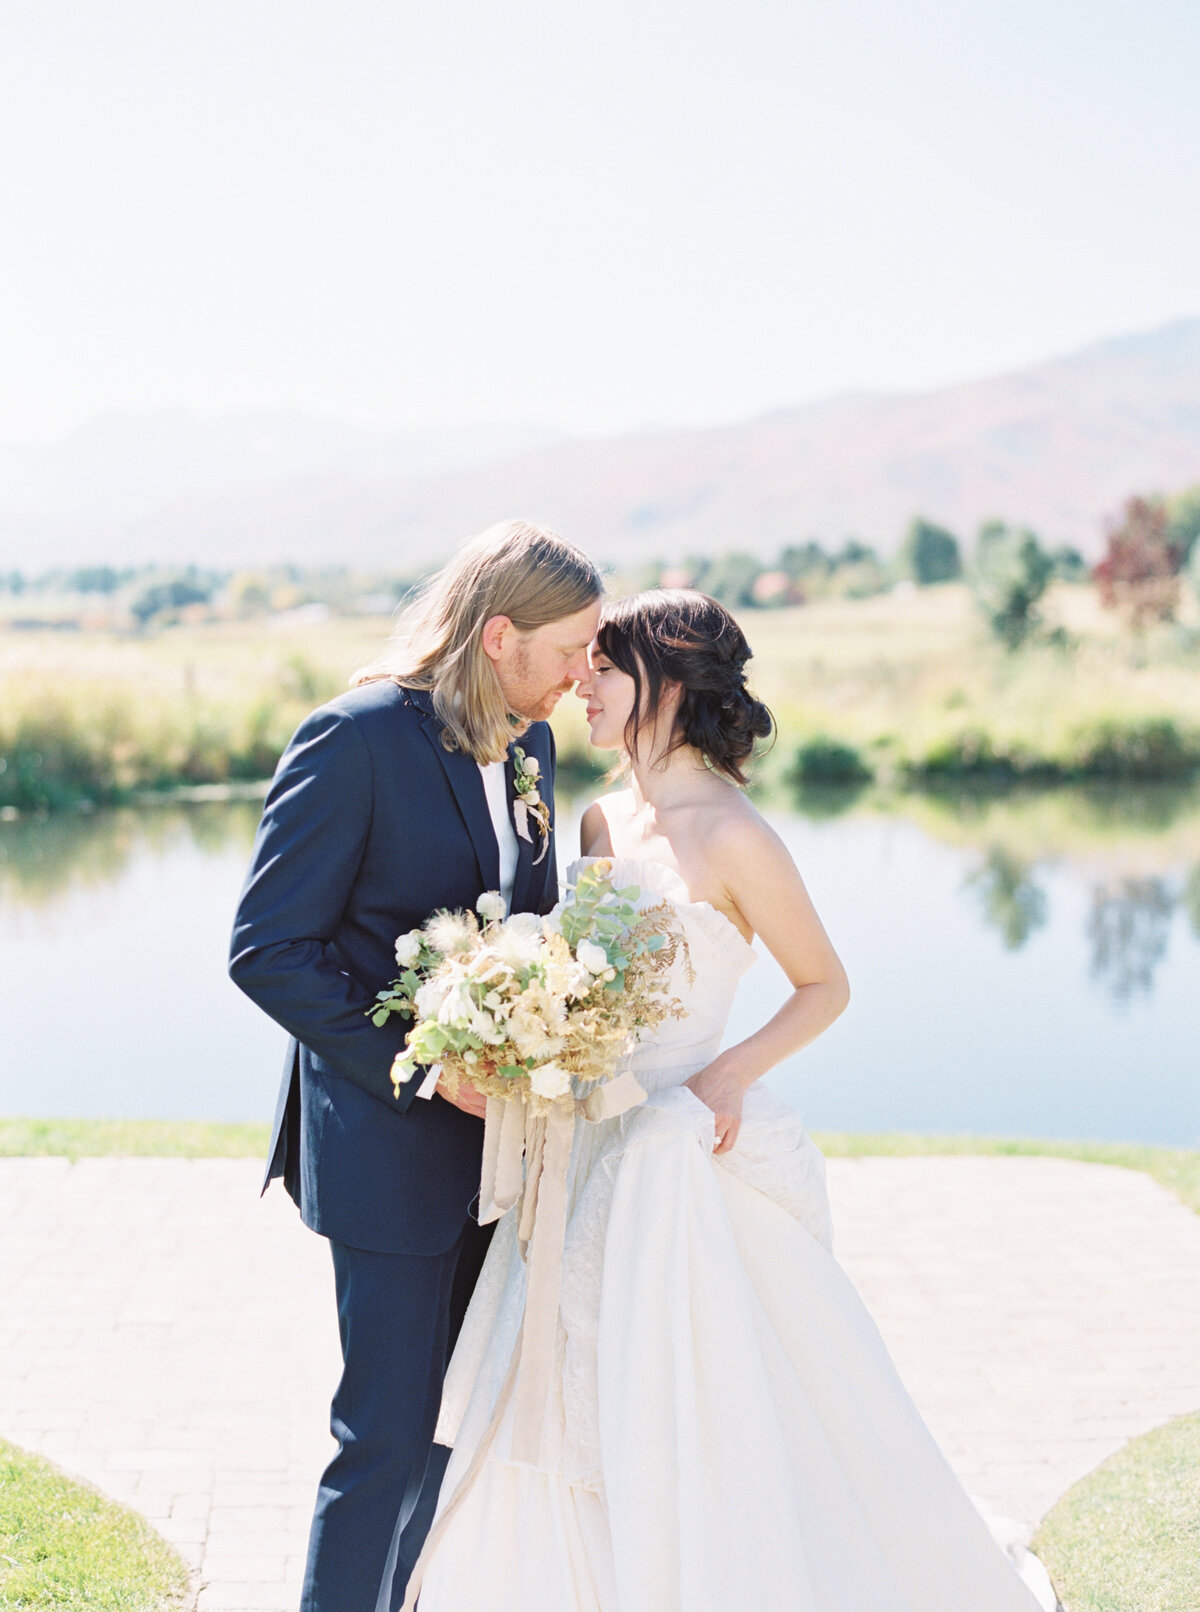 MarcelaPloskerPhotography|RiverBottomsRanch-154